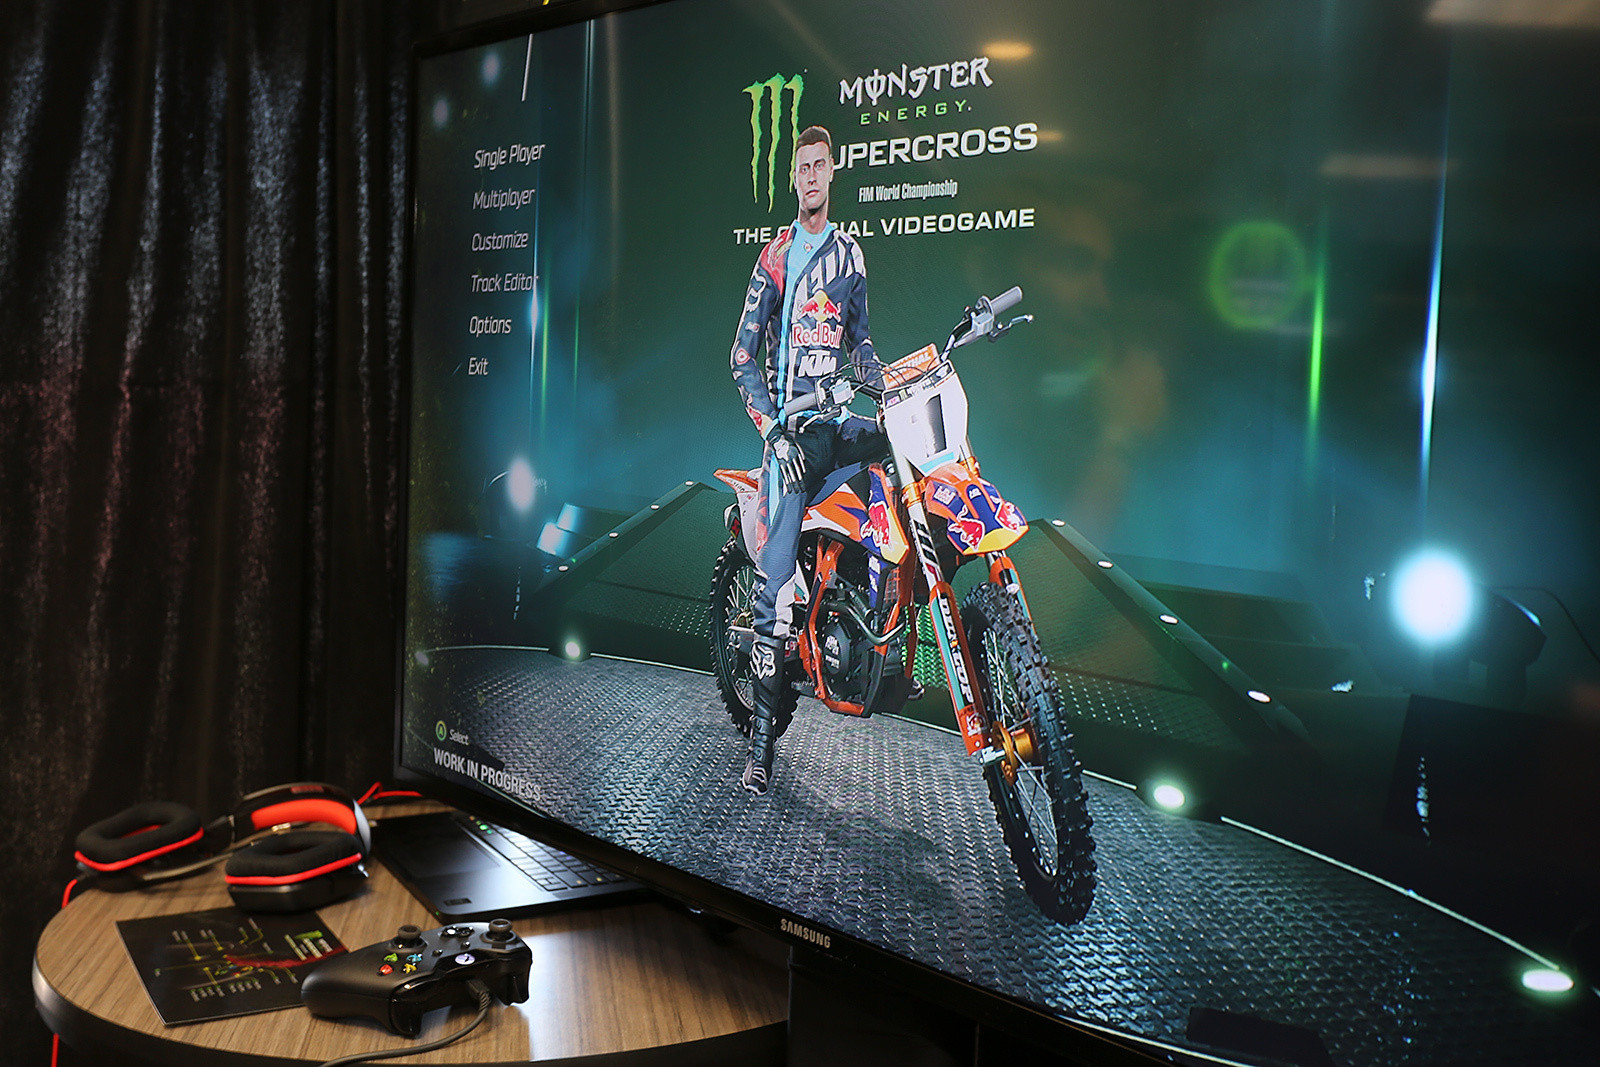 Monster Energy Supercross The Official Videogame was announced at the press conference on Friday. We got a quick chance to play the game (which is still in development), and it looks pretty cool. Look for a full roster of top name riders, including Dungey, Roczen, etc.